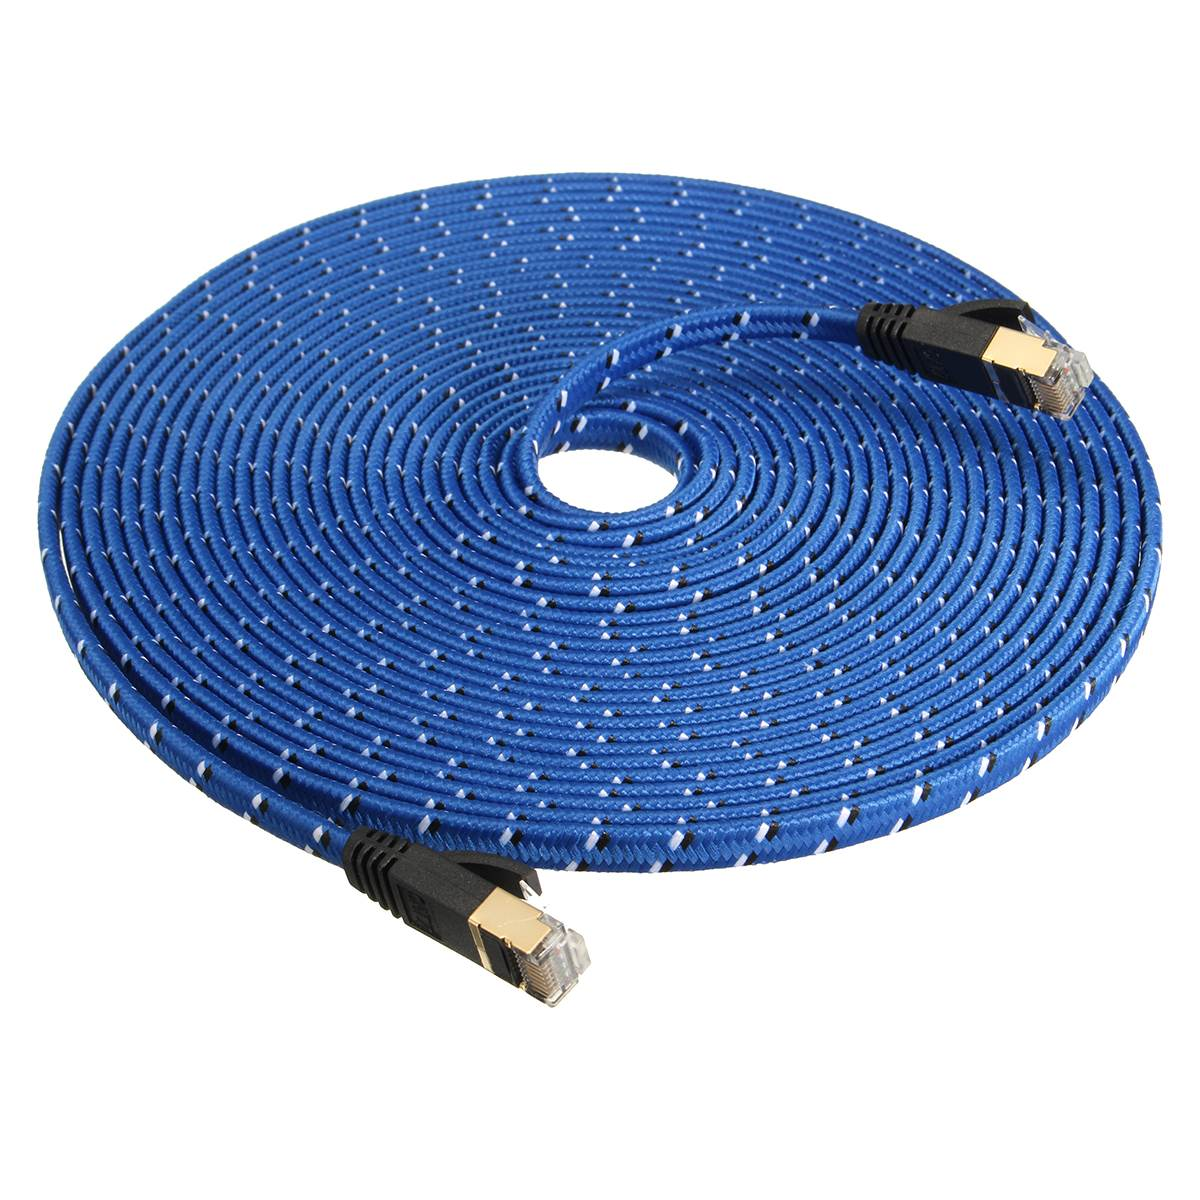 CAT 7 1.0M-10M Cable STP Flat Gigabit Ethernet Network Cable RJ45 Patch LAN Cord for PC Laptop Super High Speed